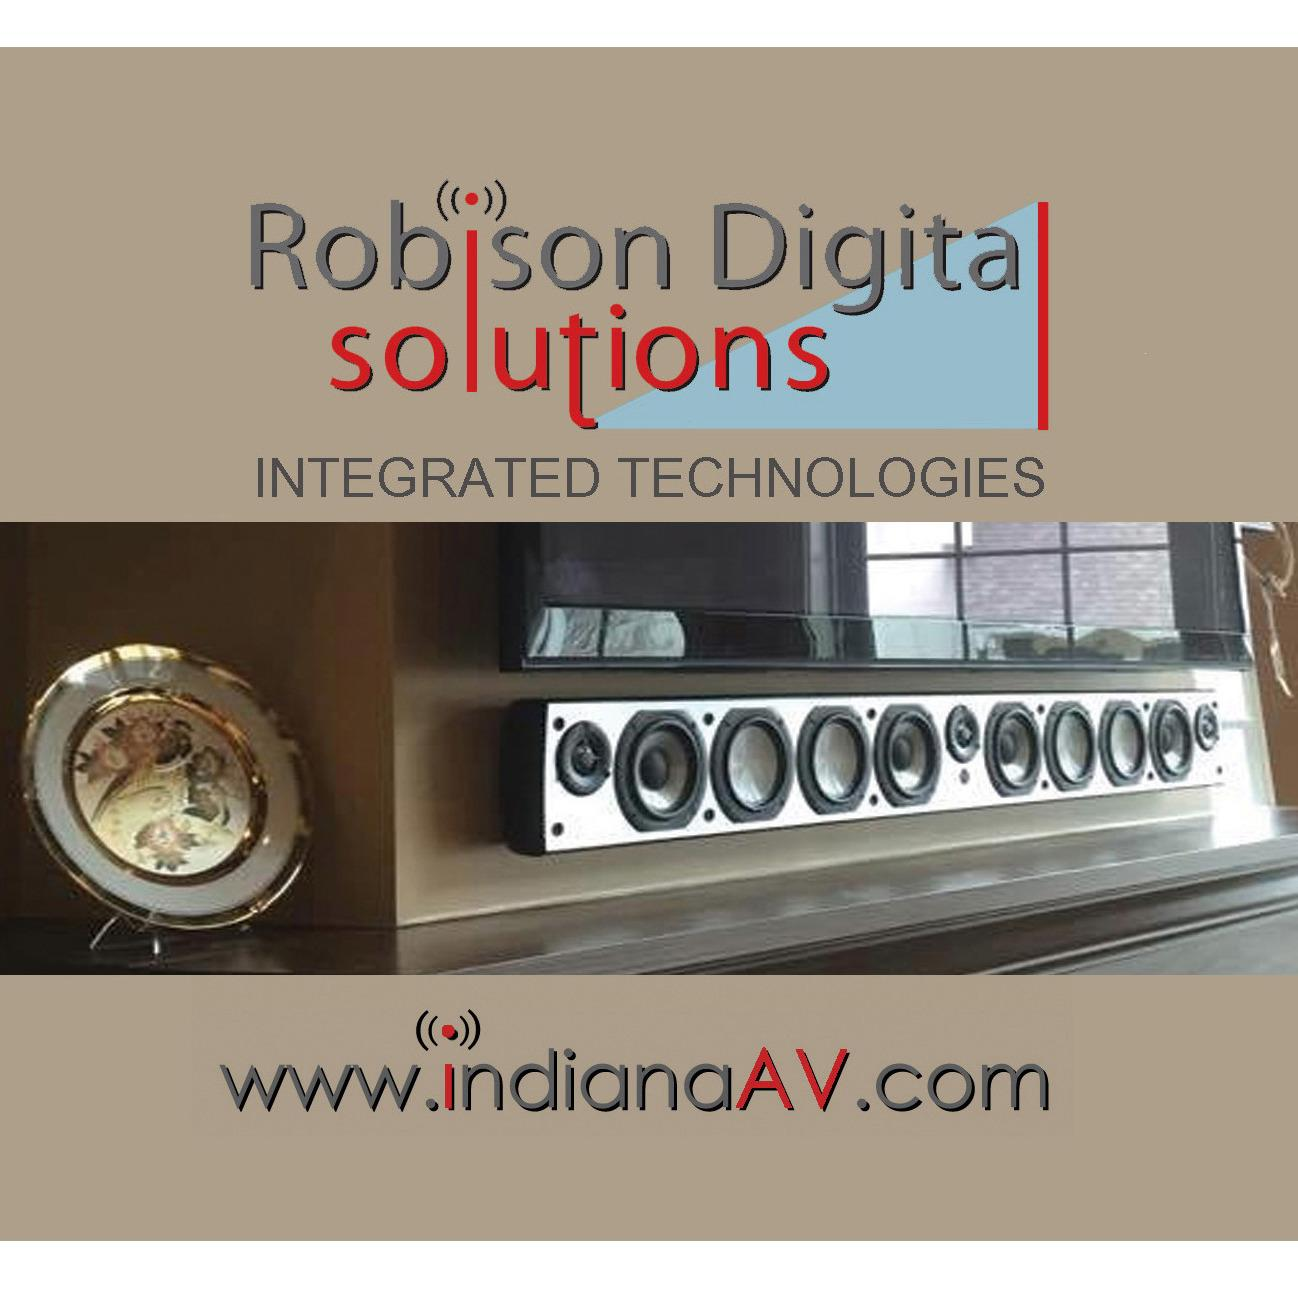 Robison Digital Solutions